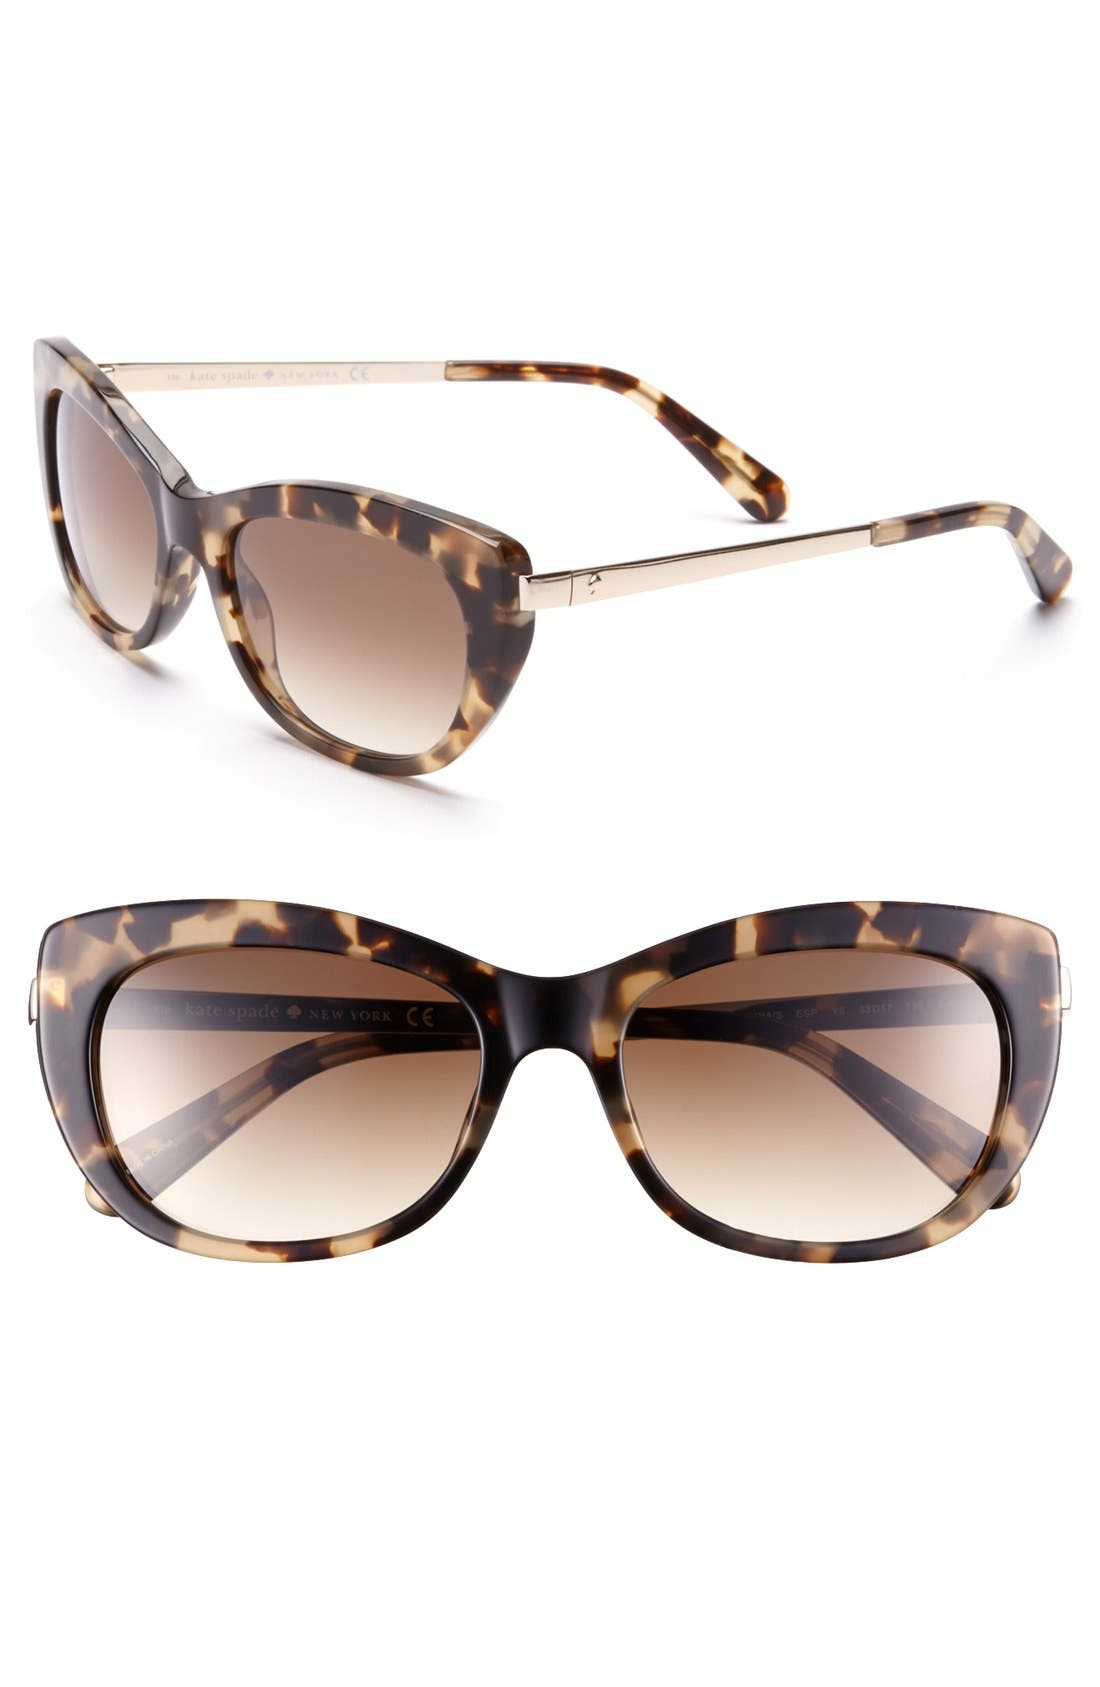 Main Image - kate spade new york 53mm retro sunglasses